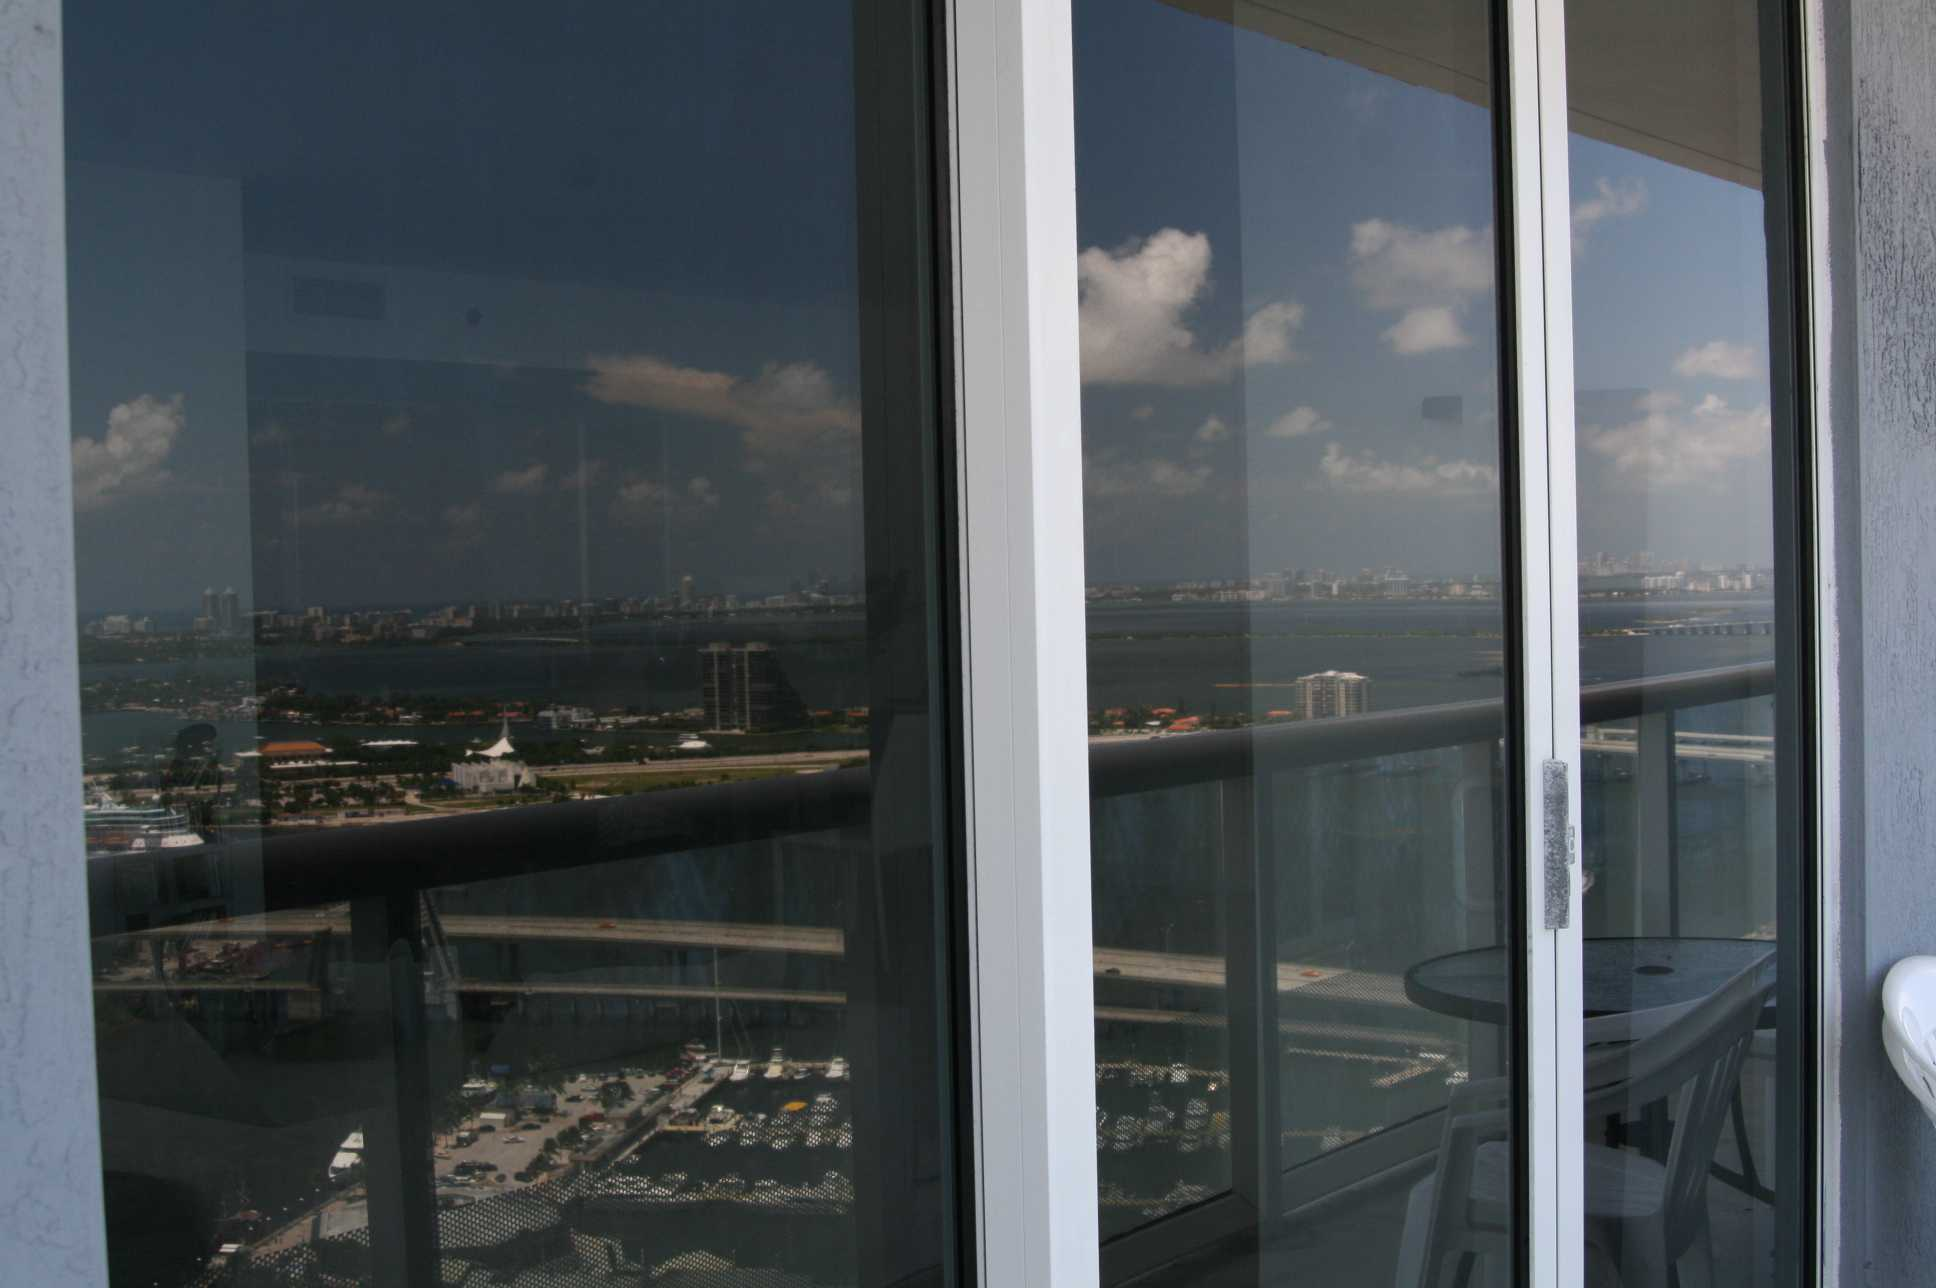 Window cleaning miami 786 364 3177 high rise window cleaning sliding glass doors cleaning brickell eventelaan Choice Image